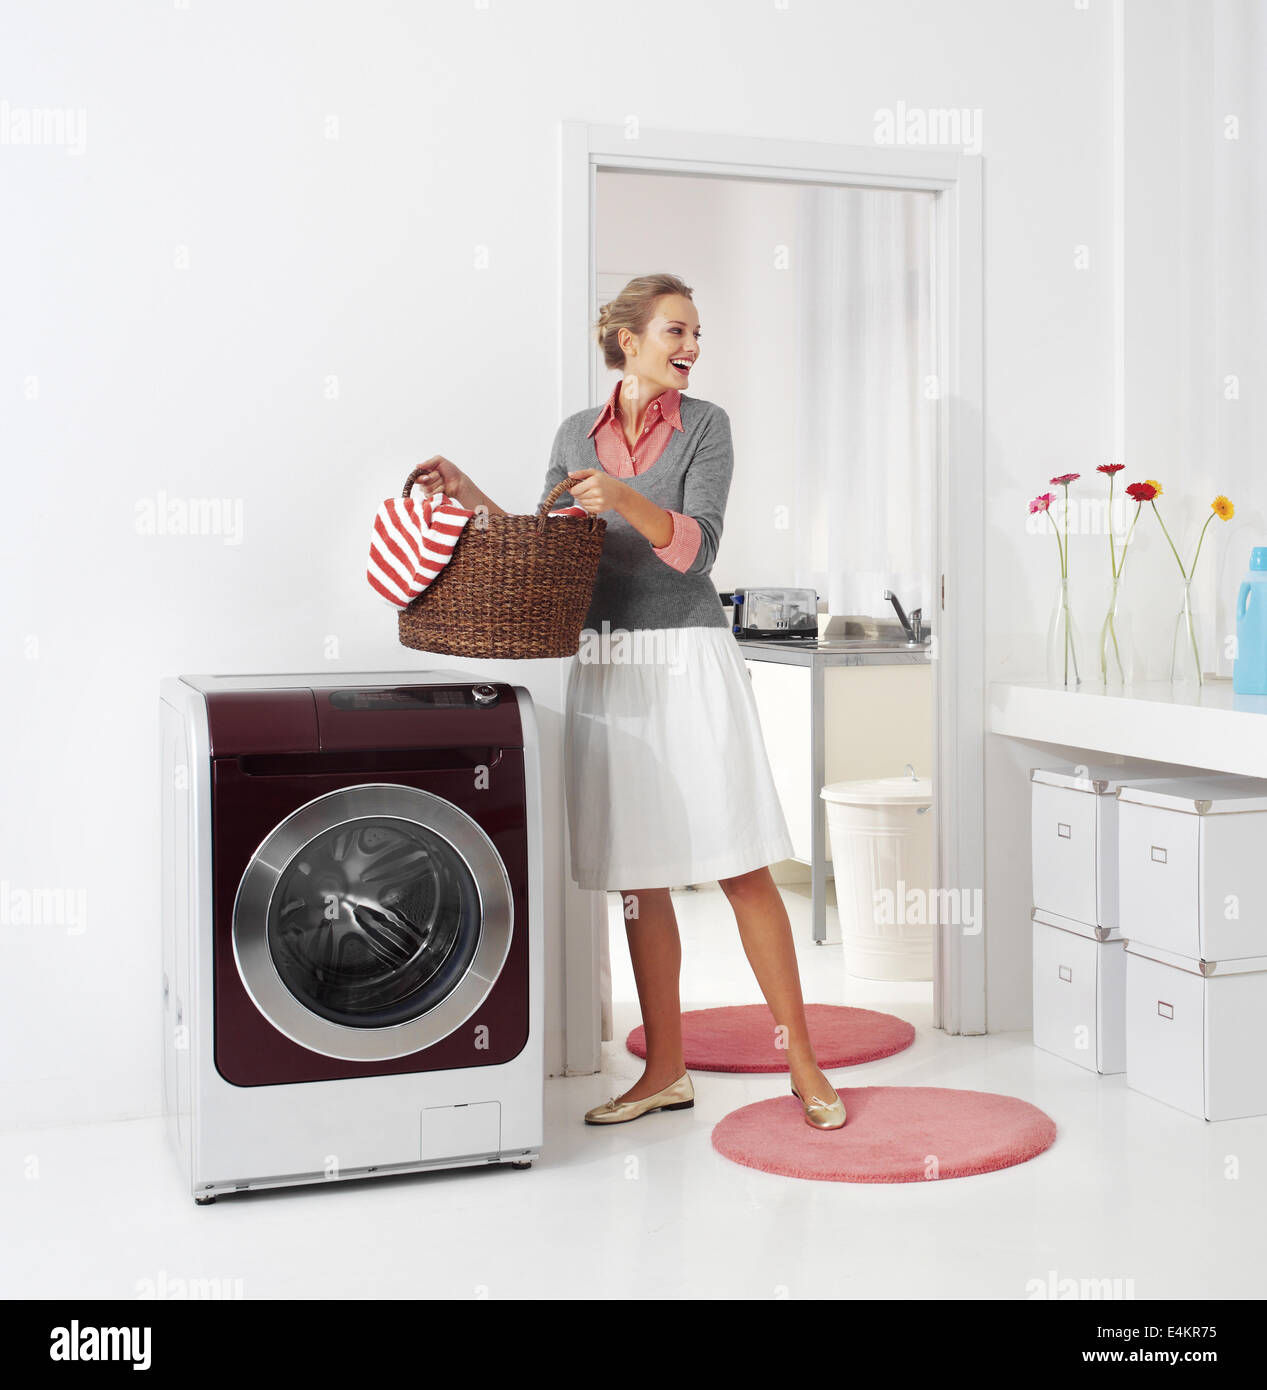 woman doing a housework holding basket of laundry - Stock Image